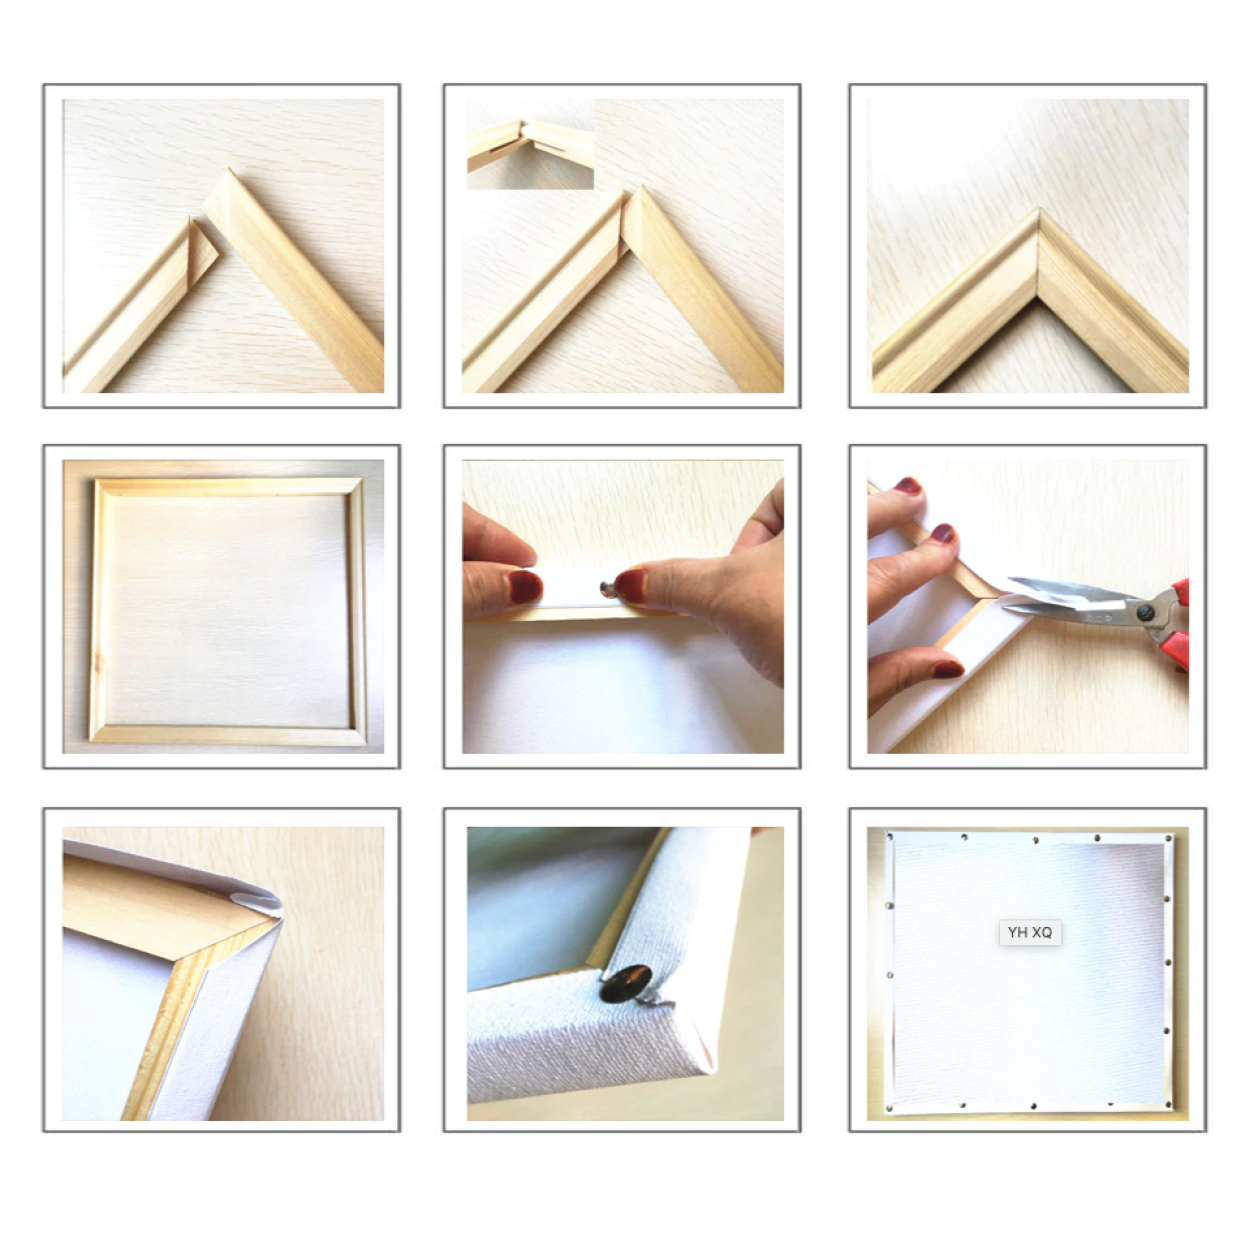 diy-frame-assembly-mindjig.jpg